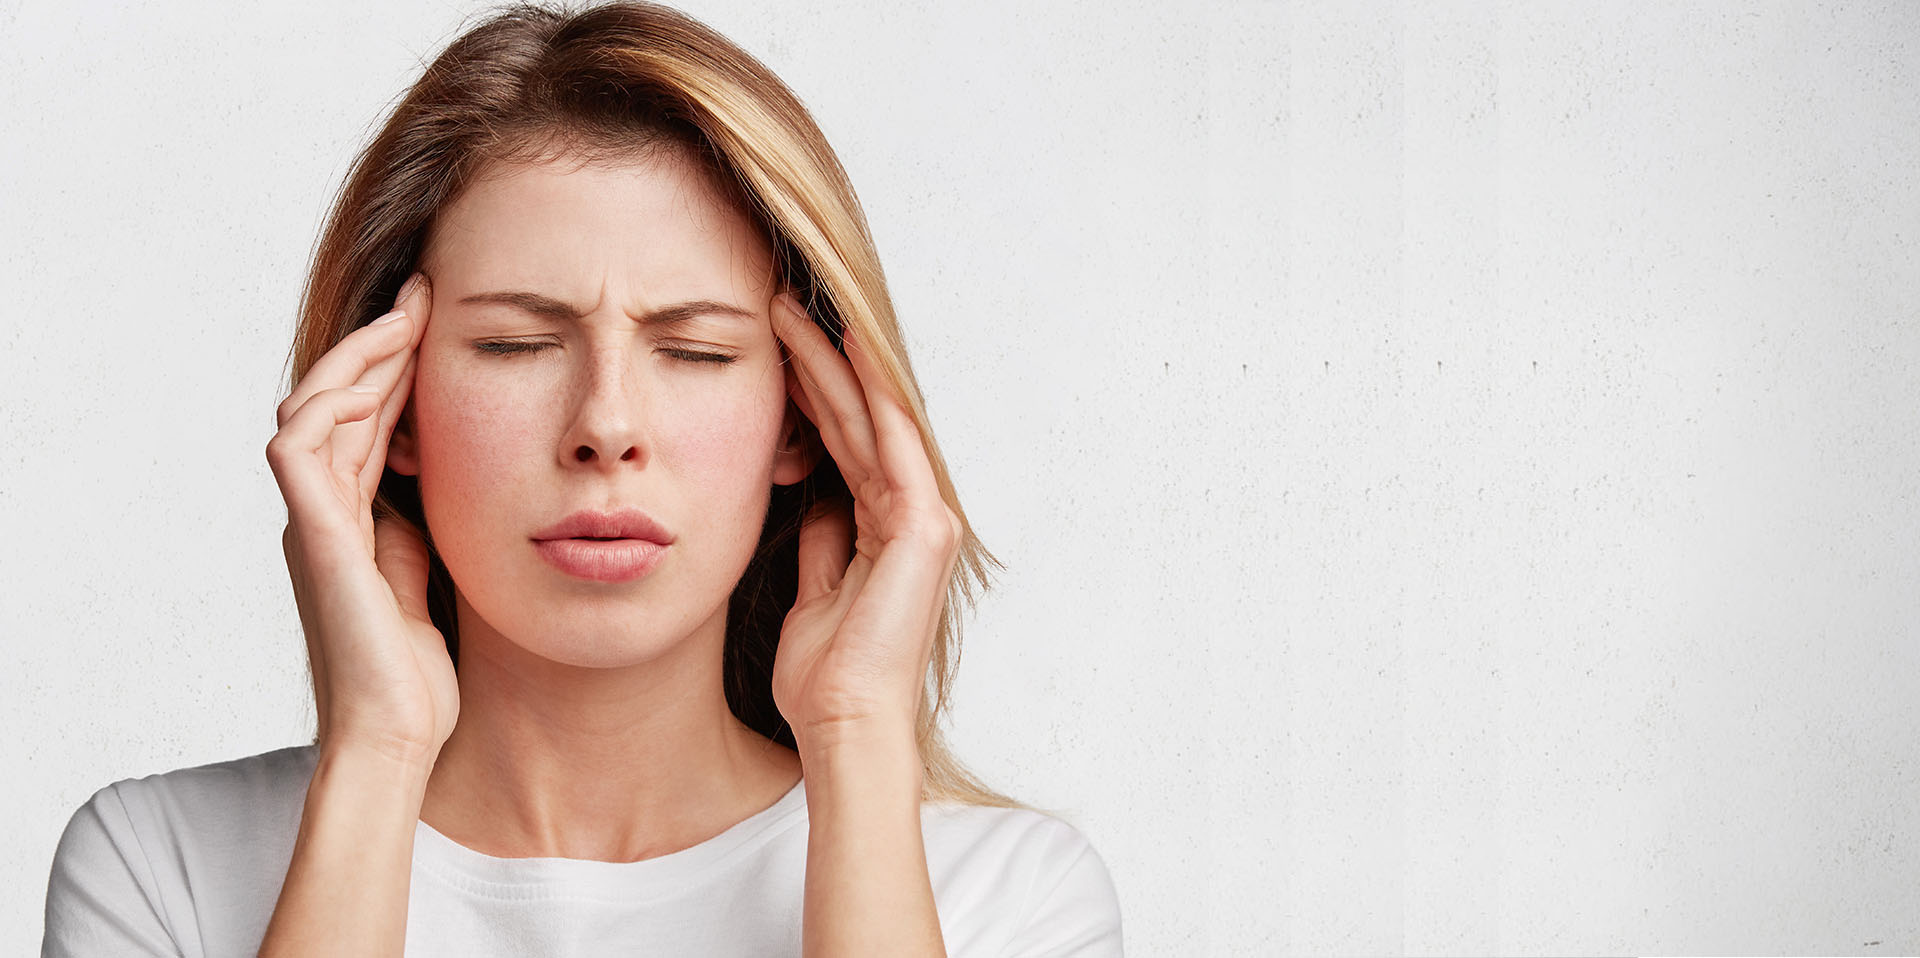 STOP MIGRAINE HEADACHES WITH THIS PAINLESS 15 MINUTE PROCEDURE